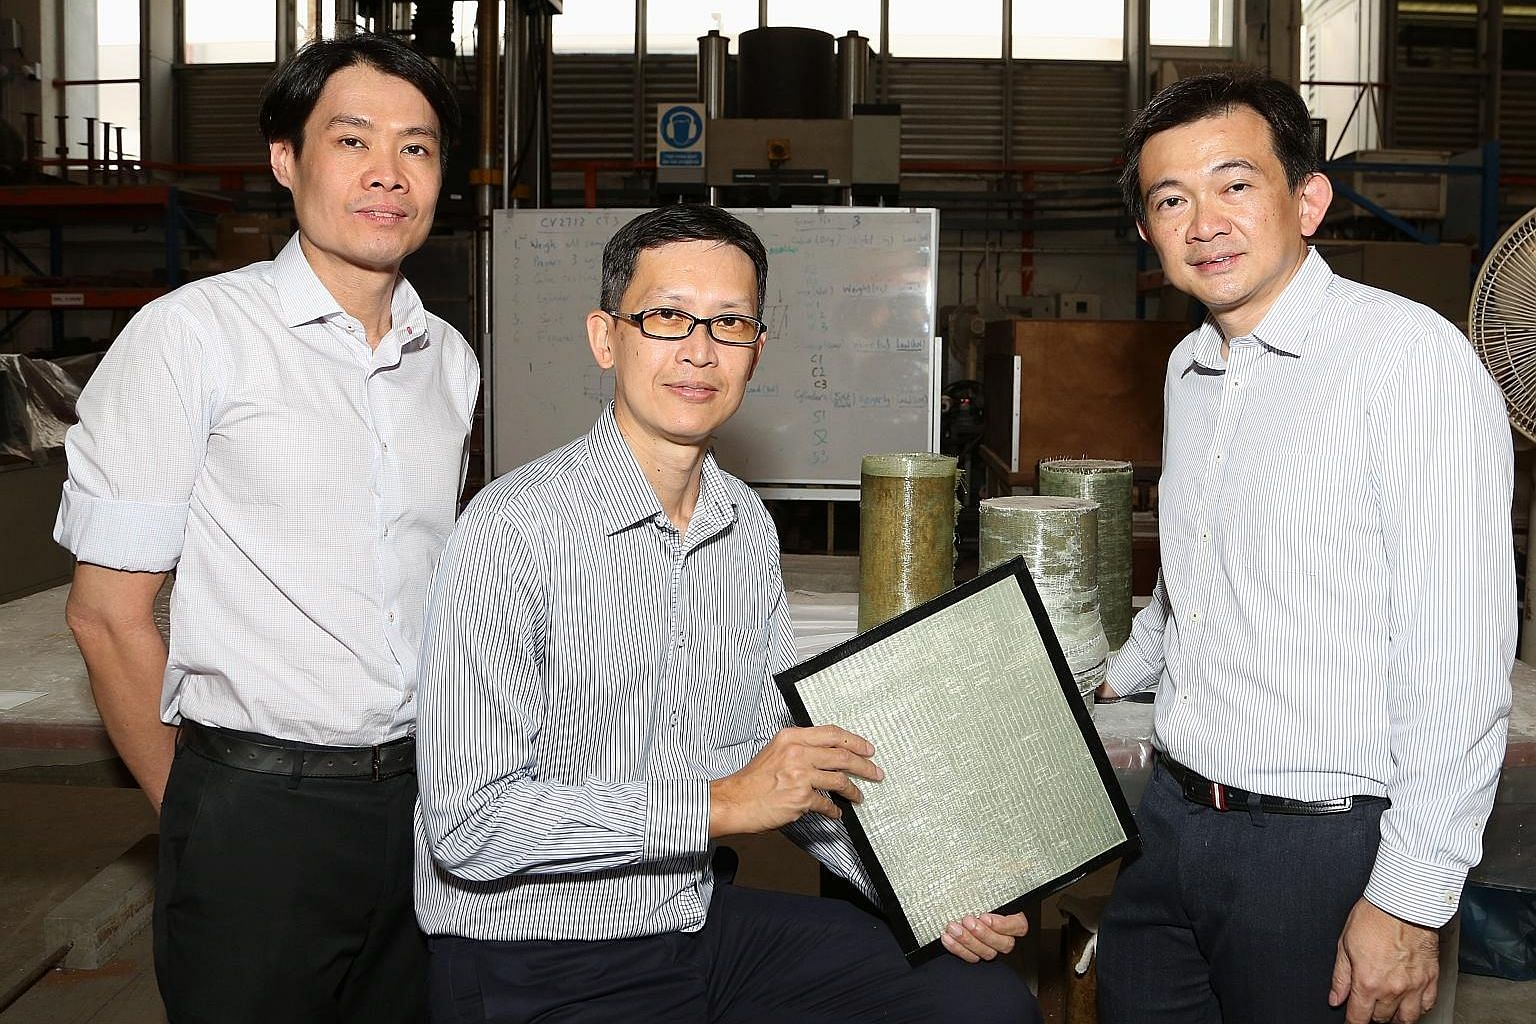 From left: Mr Calvin Chung, group director of engineering at JTC; Associate Professor Ng Kee Woei, from NTU's School of Materials Science and Engineering; and Dr Ang Choon Keat, founder of Prostruct Consulting. FasRaP was jointly developed by scienti